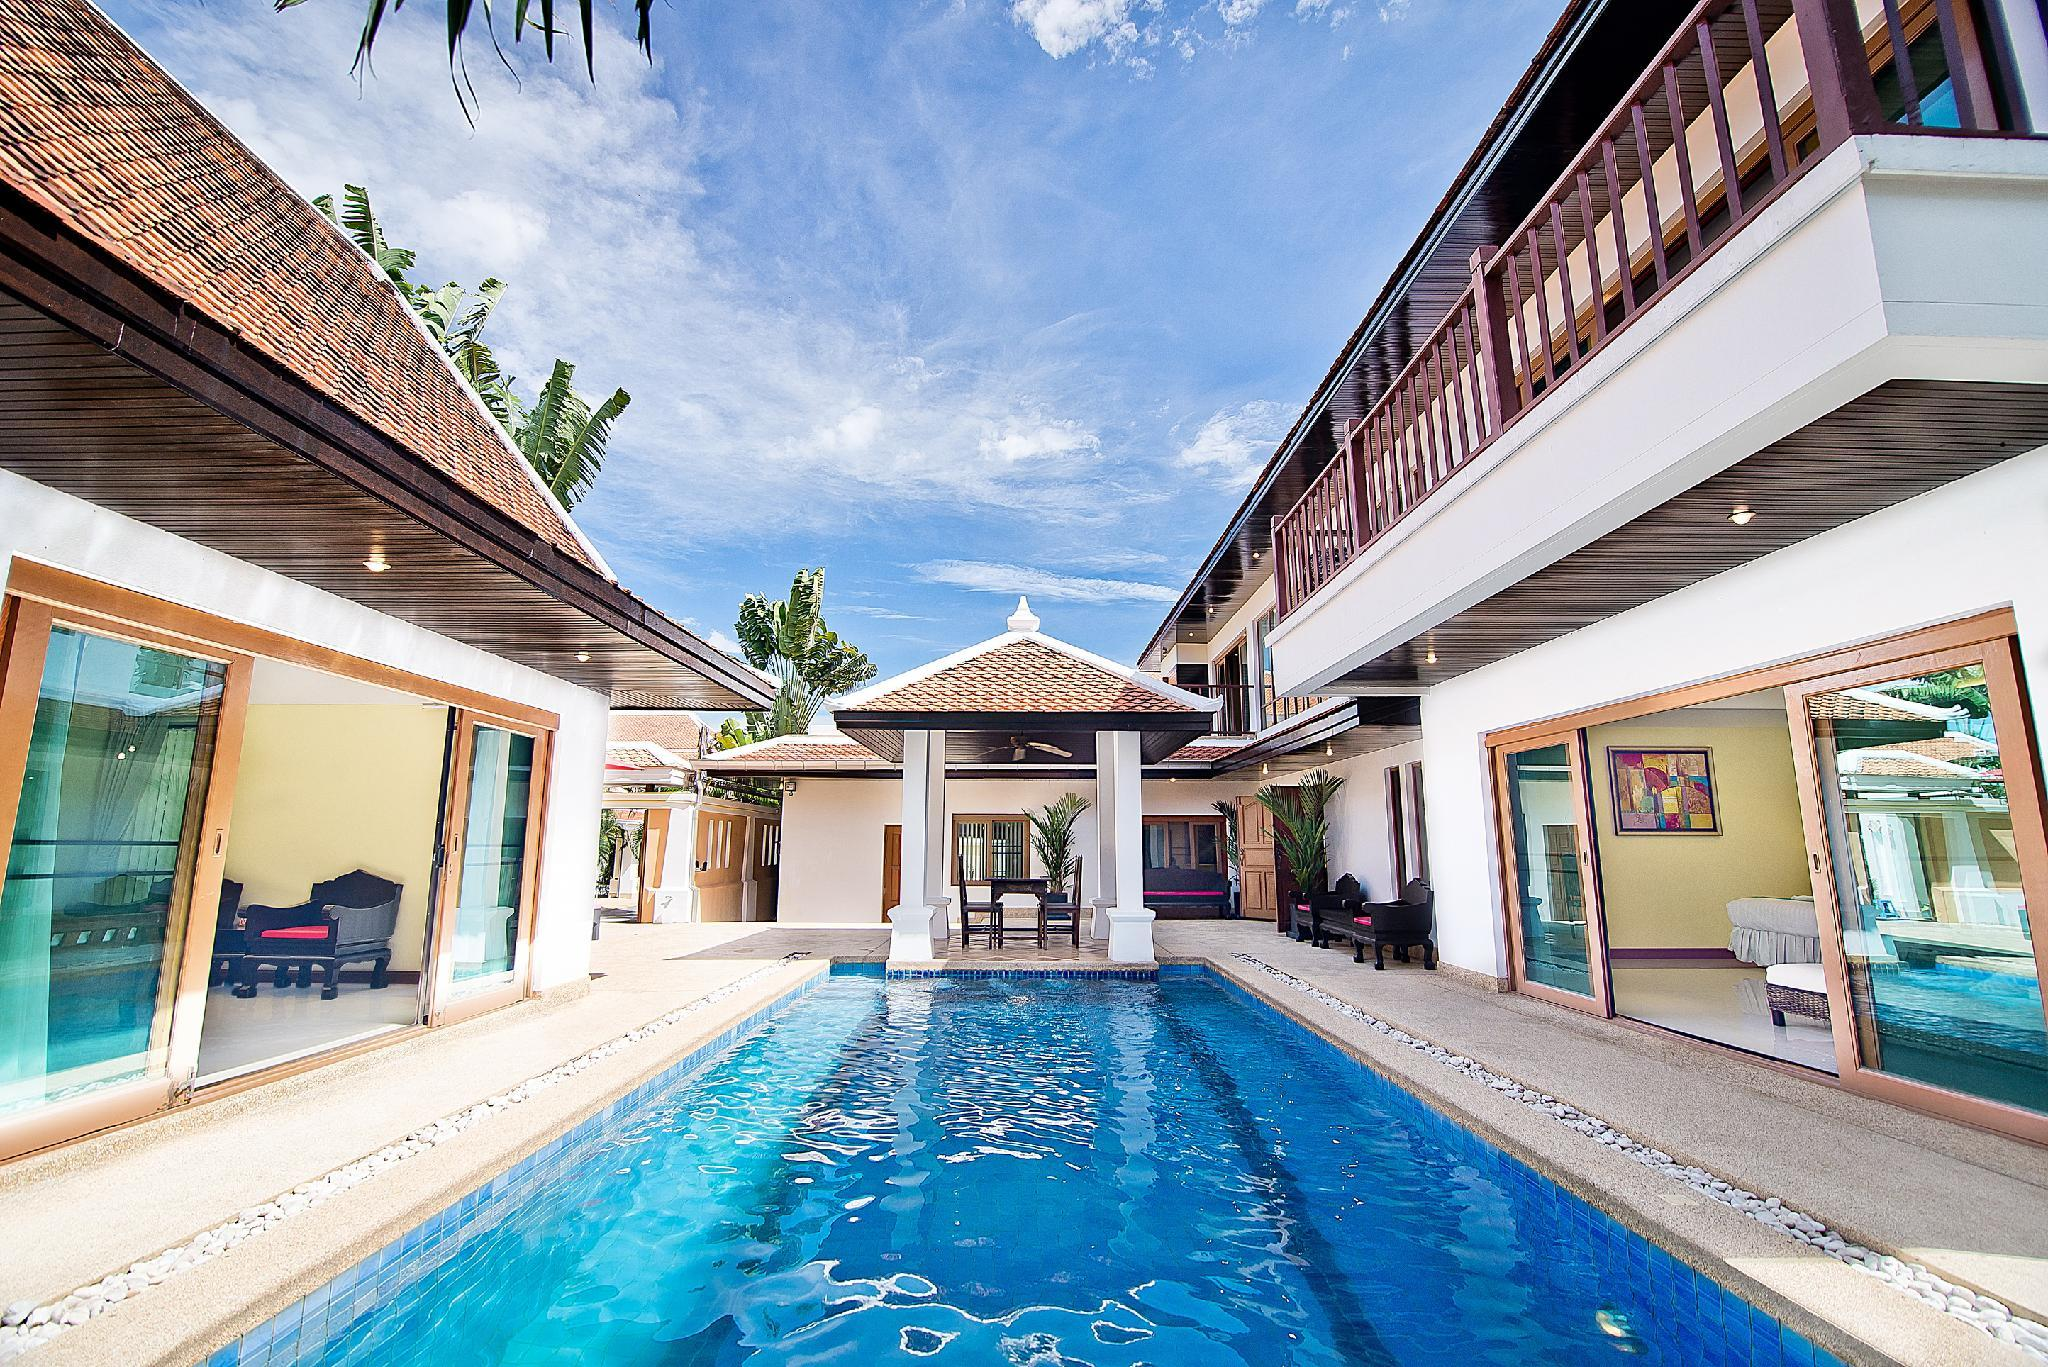 四臥室別墅Na Jomtien 3 - 有私人泳池 (4-Bedroom Villa Na Jomtien 3 with Private Pool)